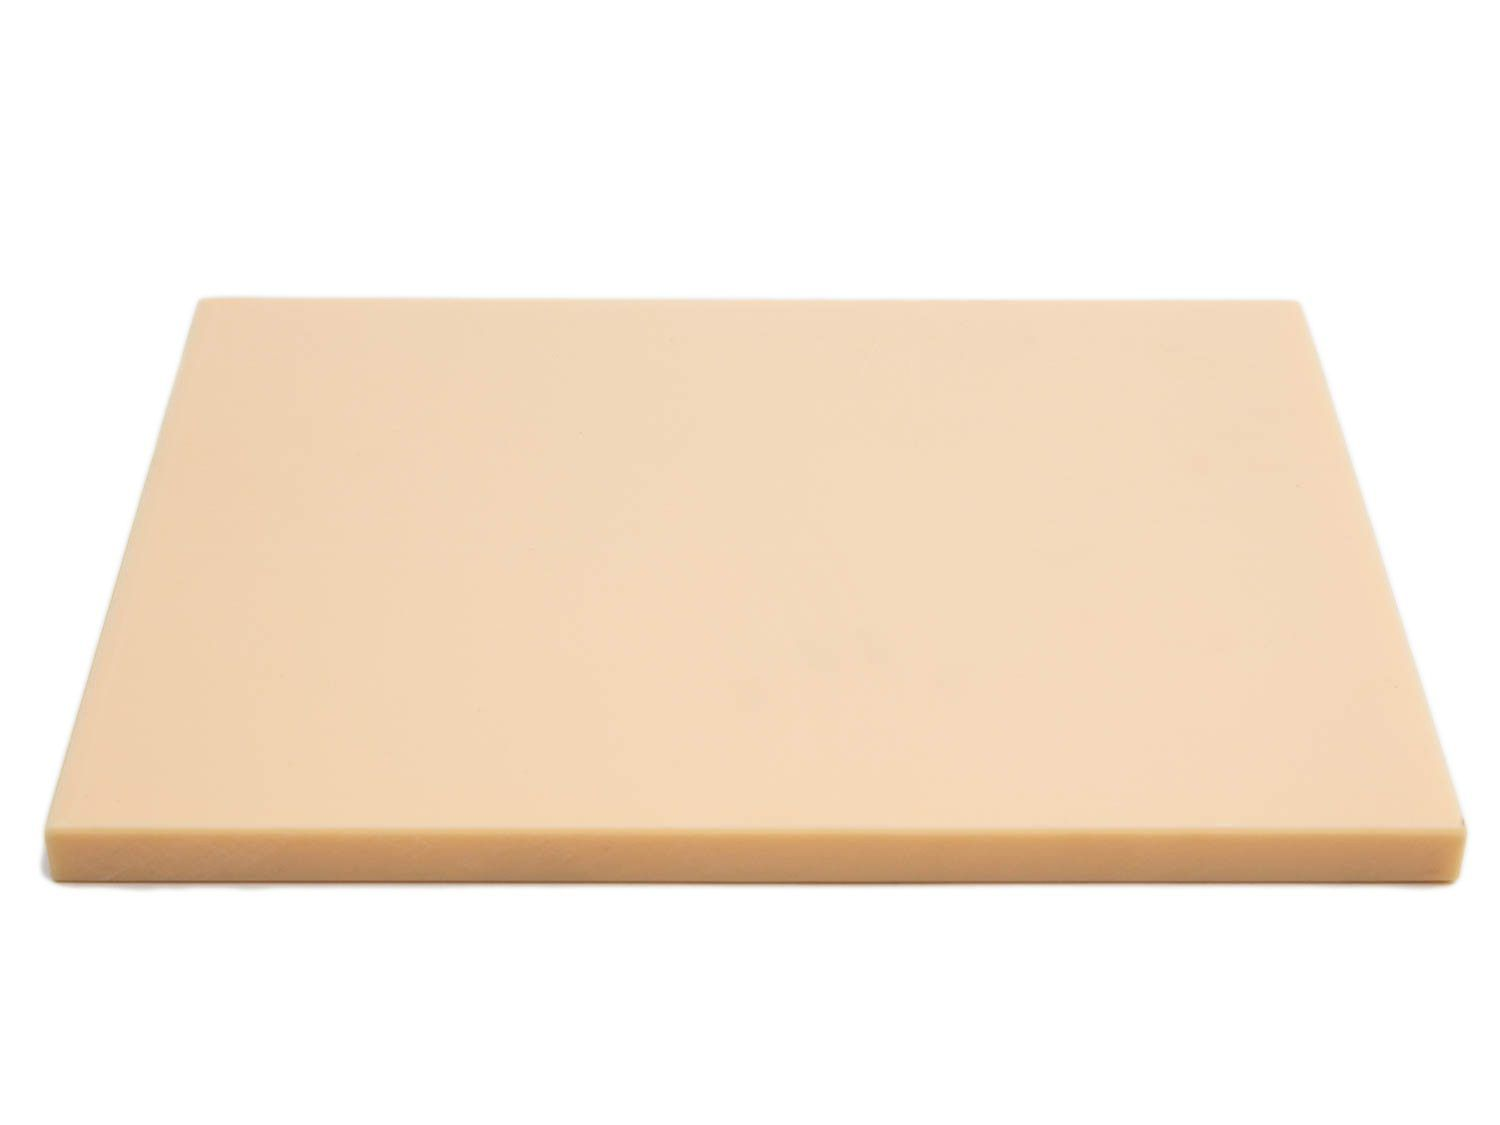 We like these Japanese high-soft cutting boards for their wood-like performance.